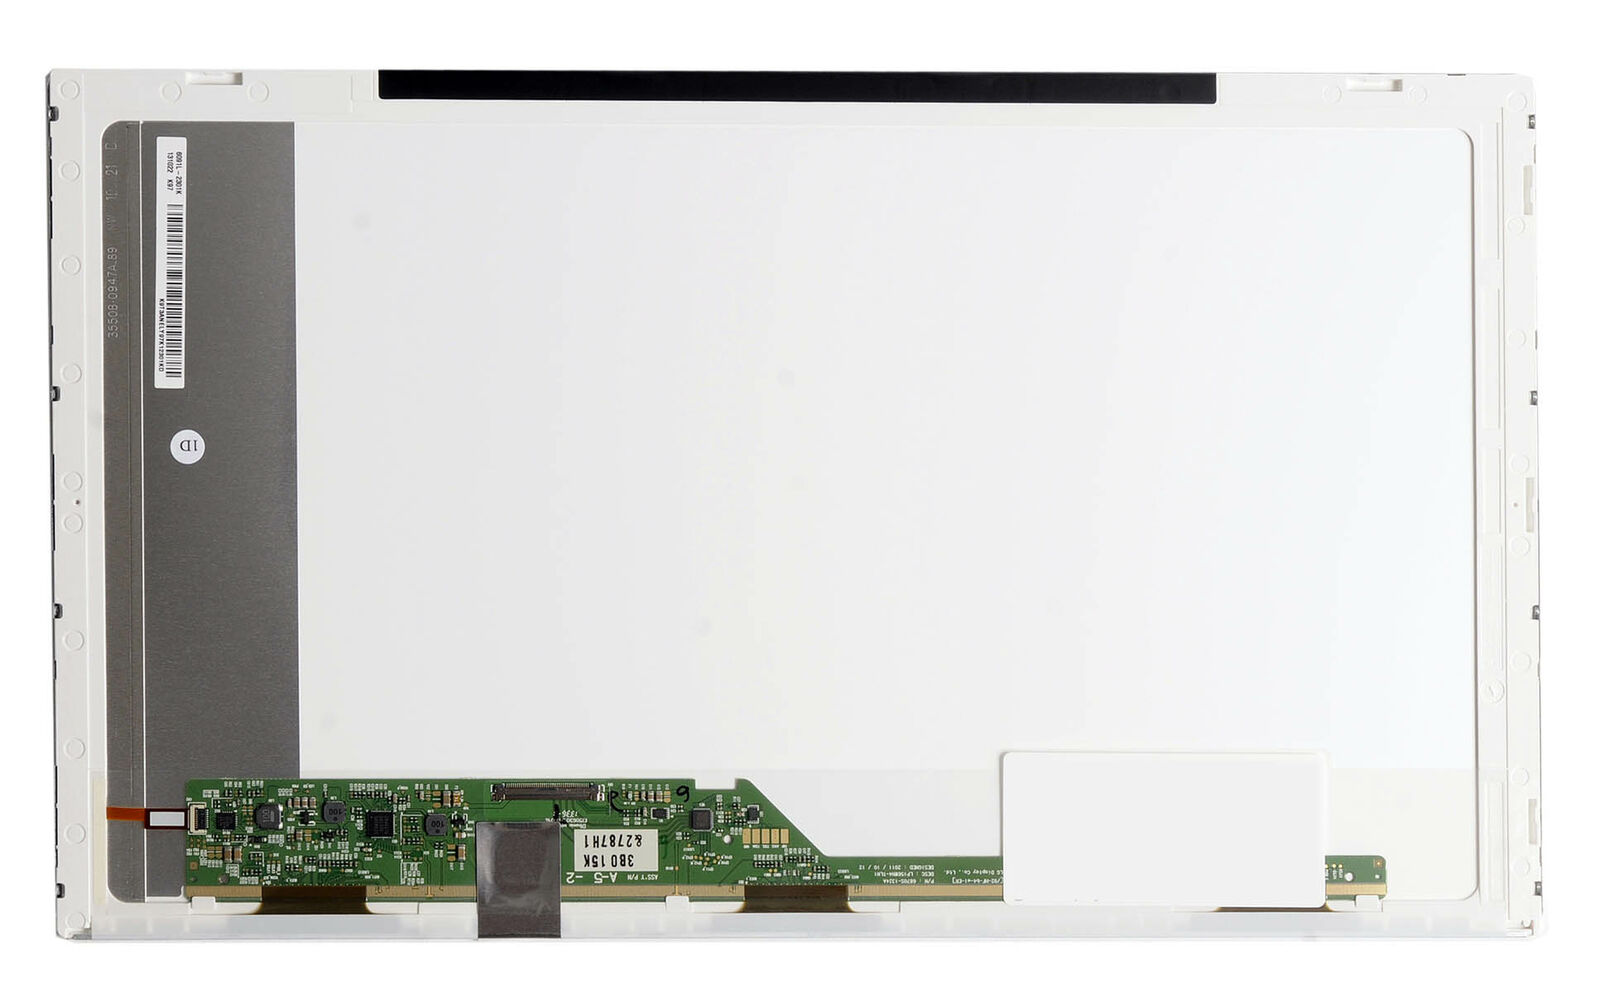 SONY PCG-71313L REPLACEMENT LAPTOP 15.6